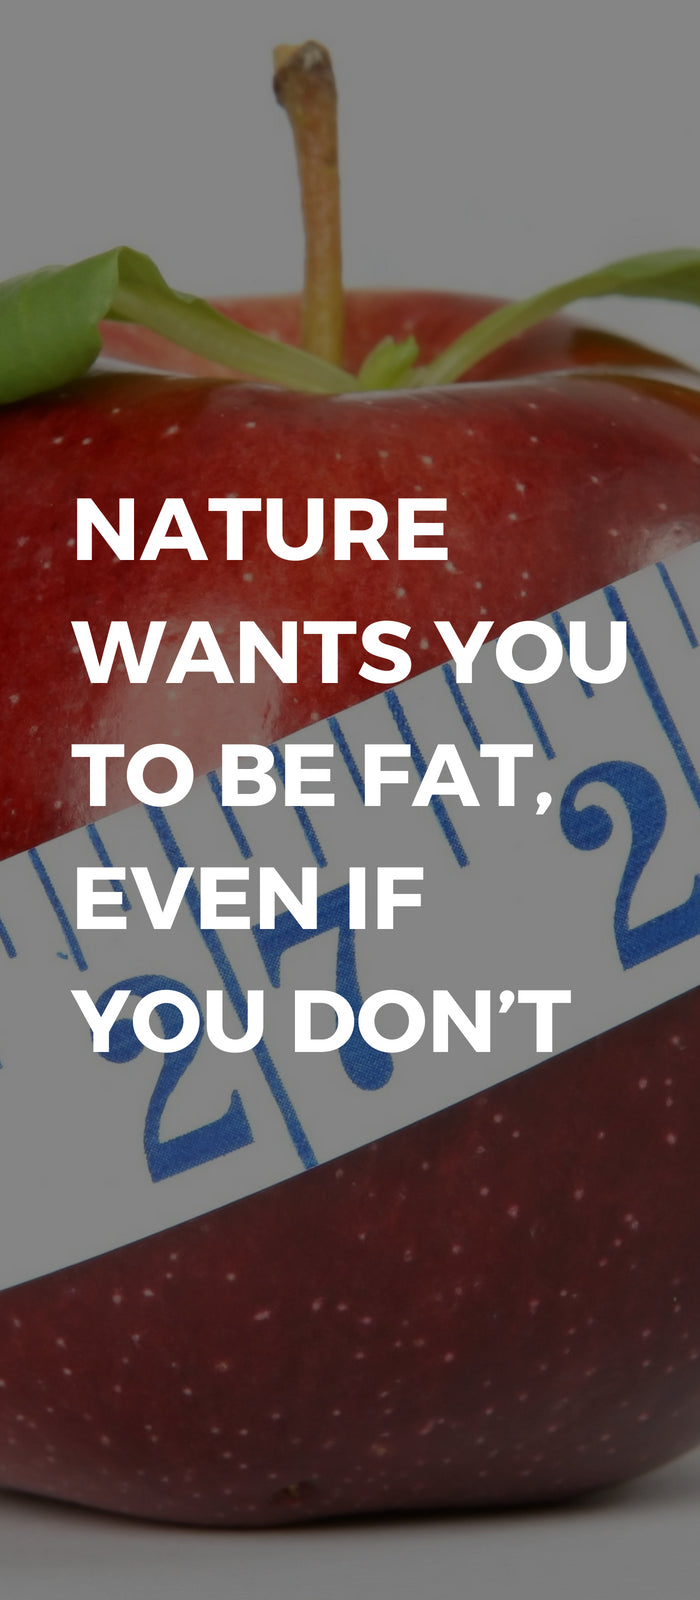 Nature Wants You to Be Fat, Even If You Don't